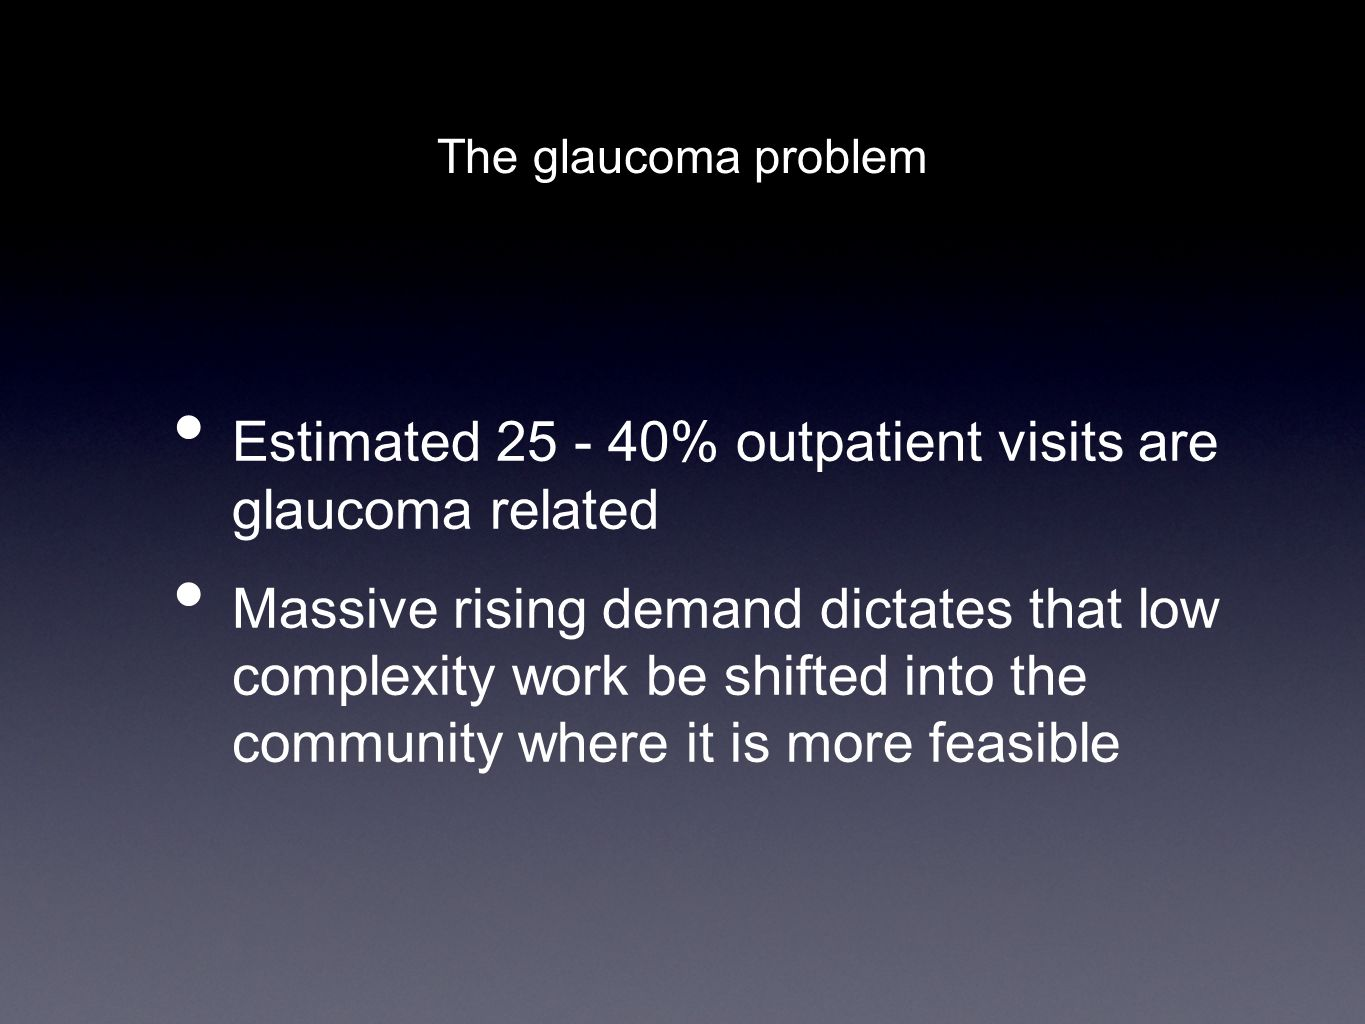 Estimated 25 - 40% outpatient visits are glaucoma related